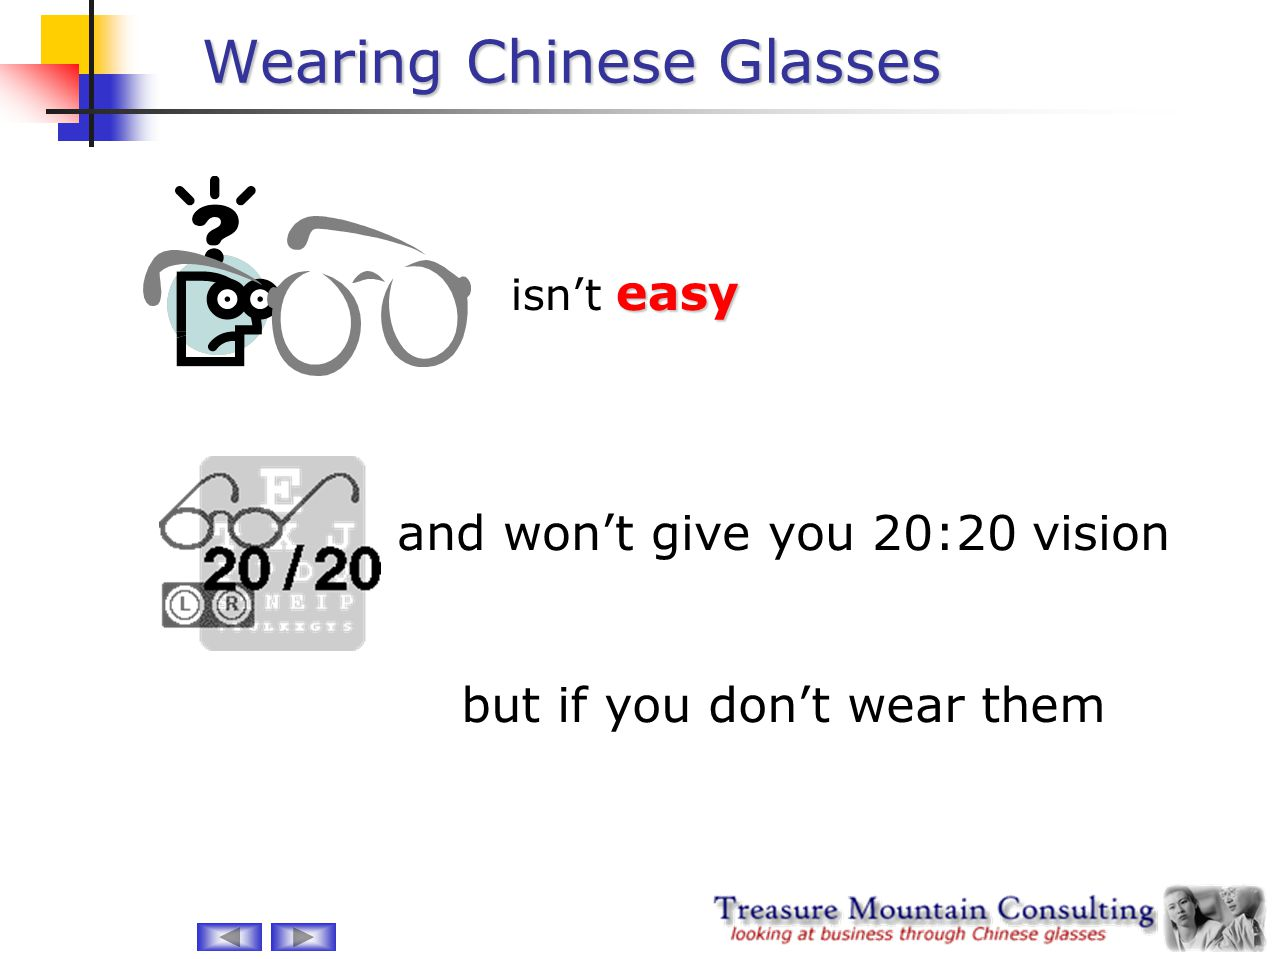 Wearing Chinese Glasses easy isn't easy and won't give you 20:20 vision but if you don't wear them